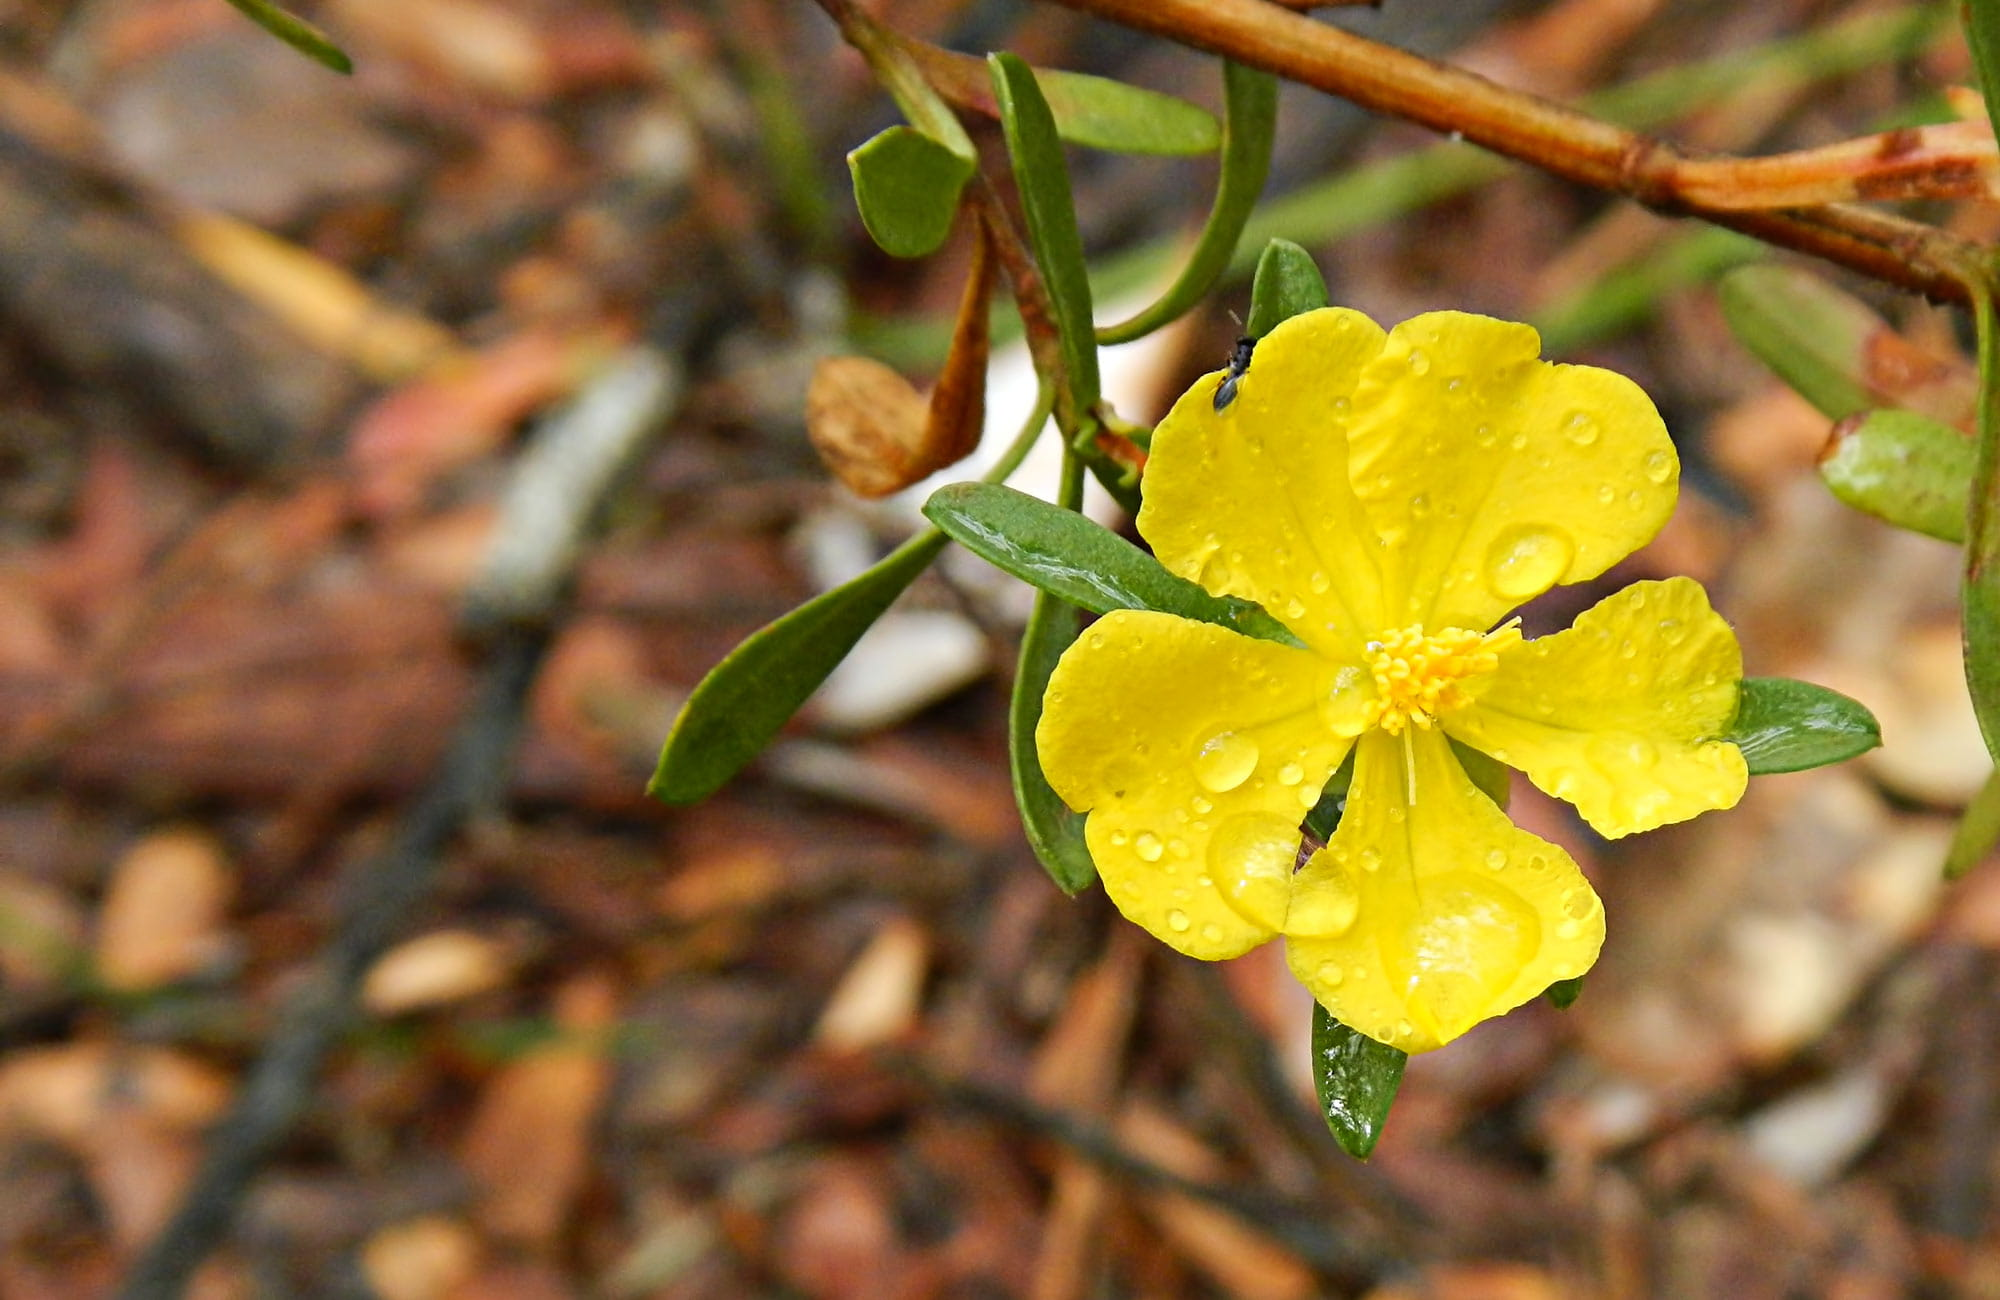 Yellow Flower. Photo: Debby McGerty